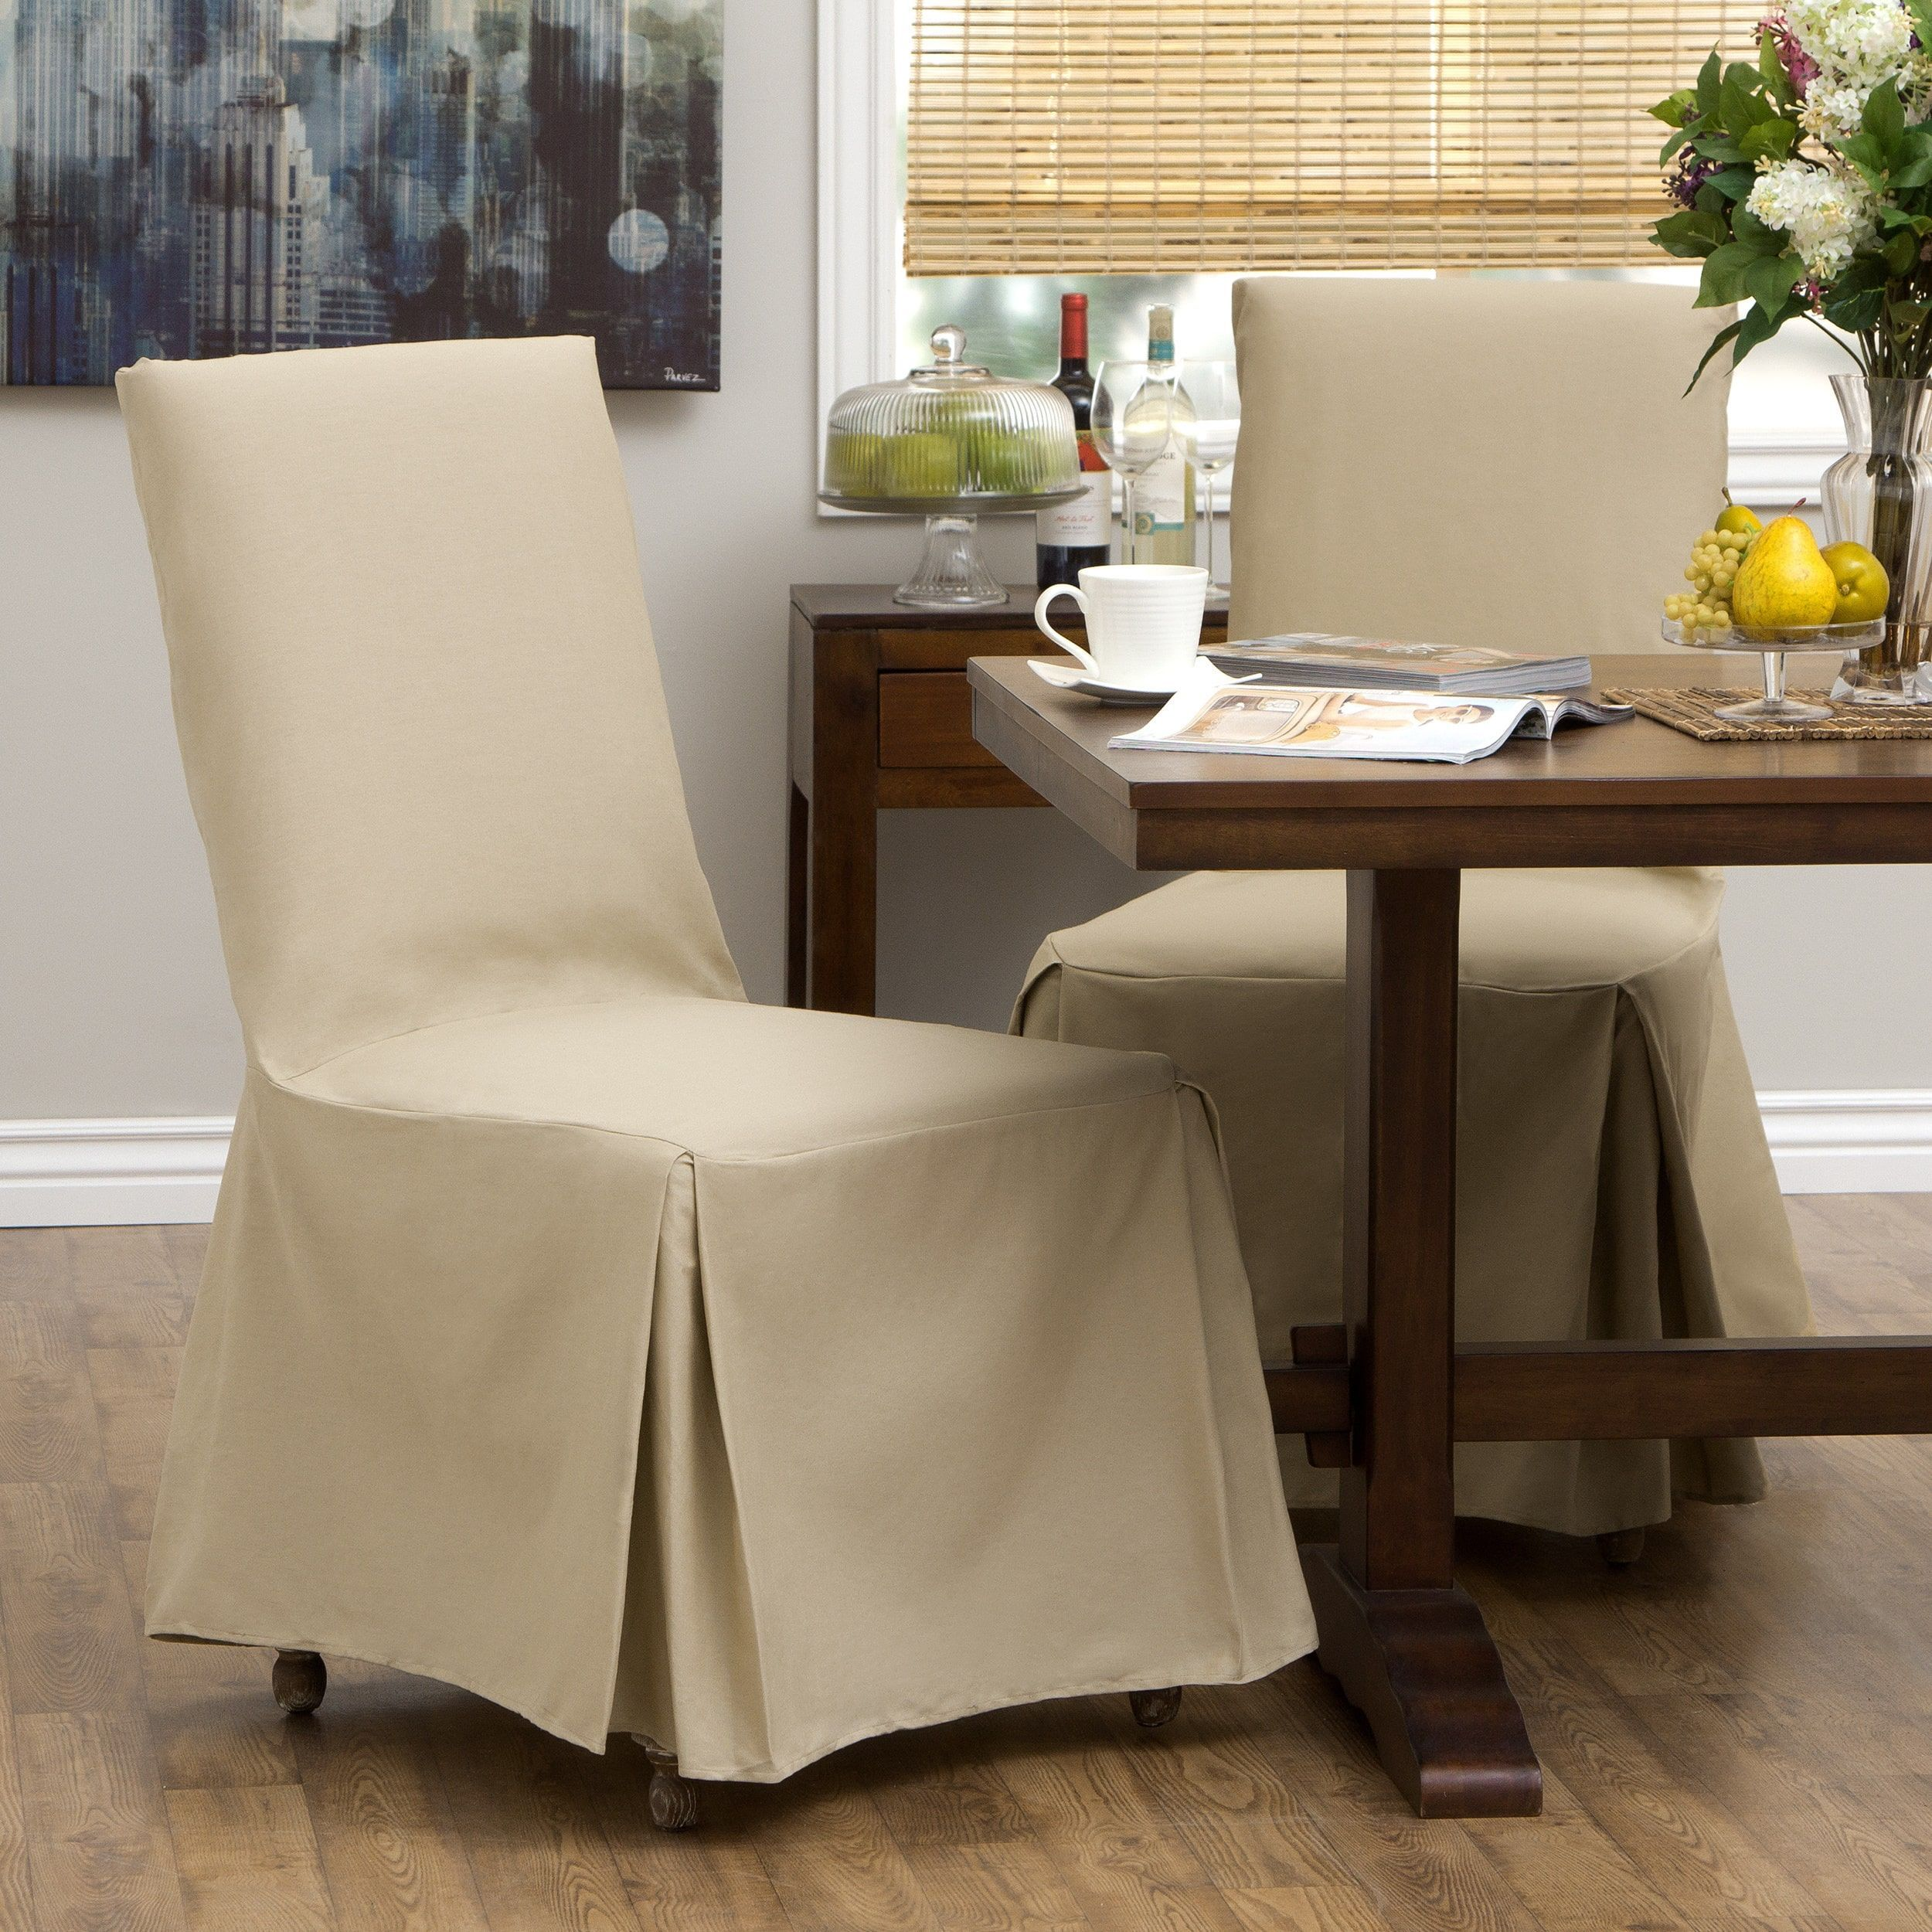 chair covers cotton light gray classic slipcovers duck parsons slipcover pair khaki brown solid